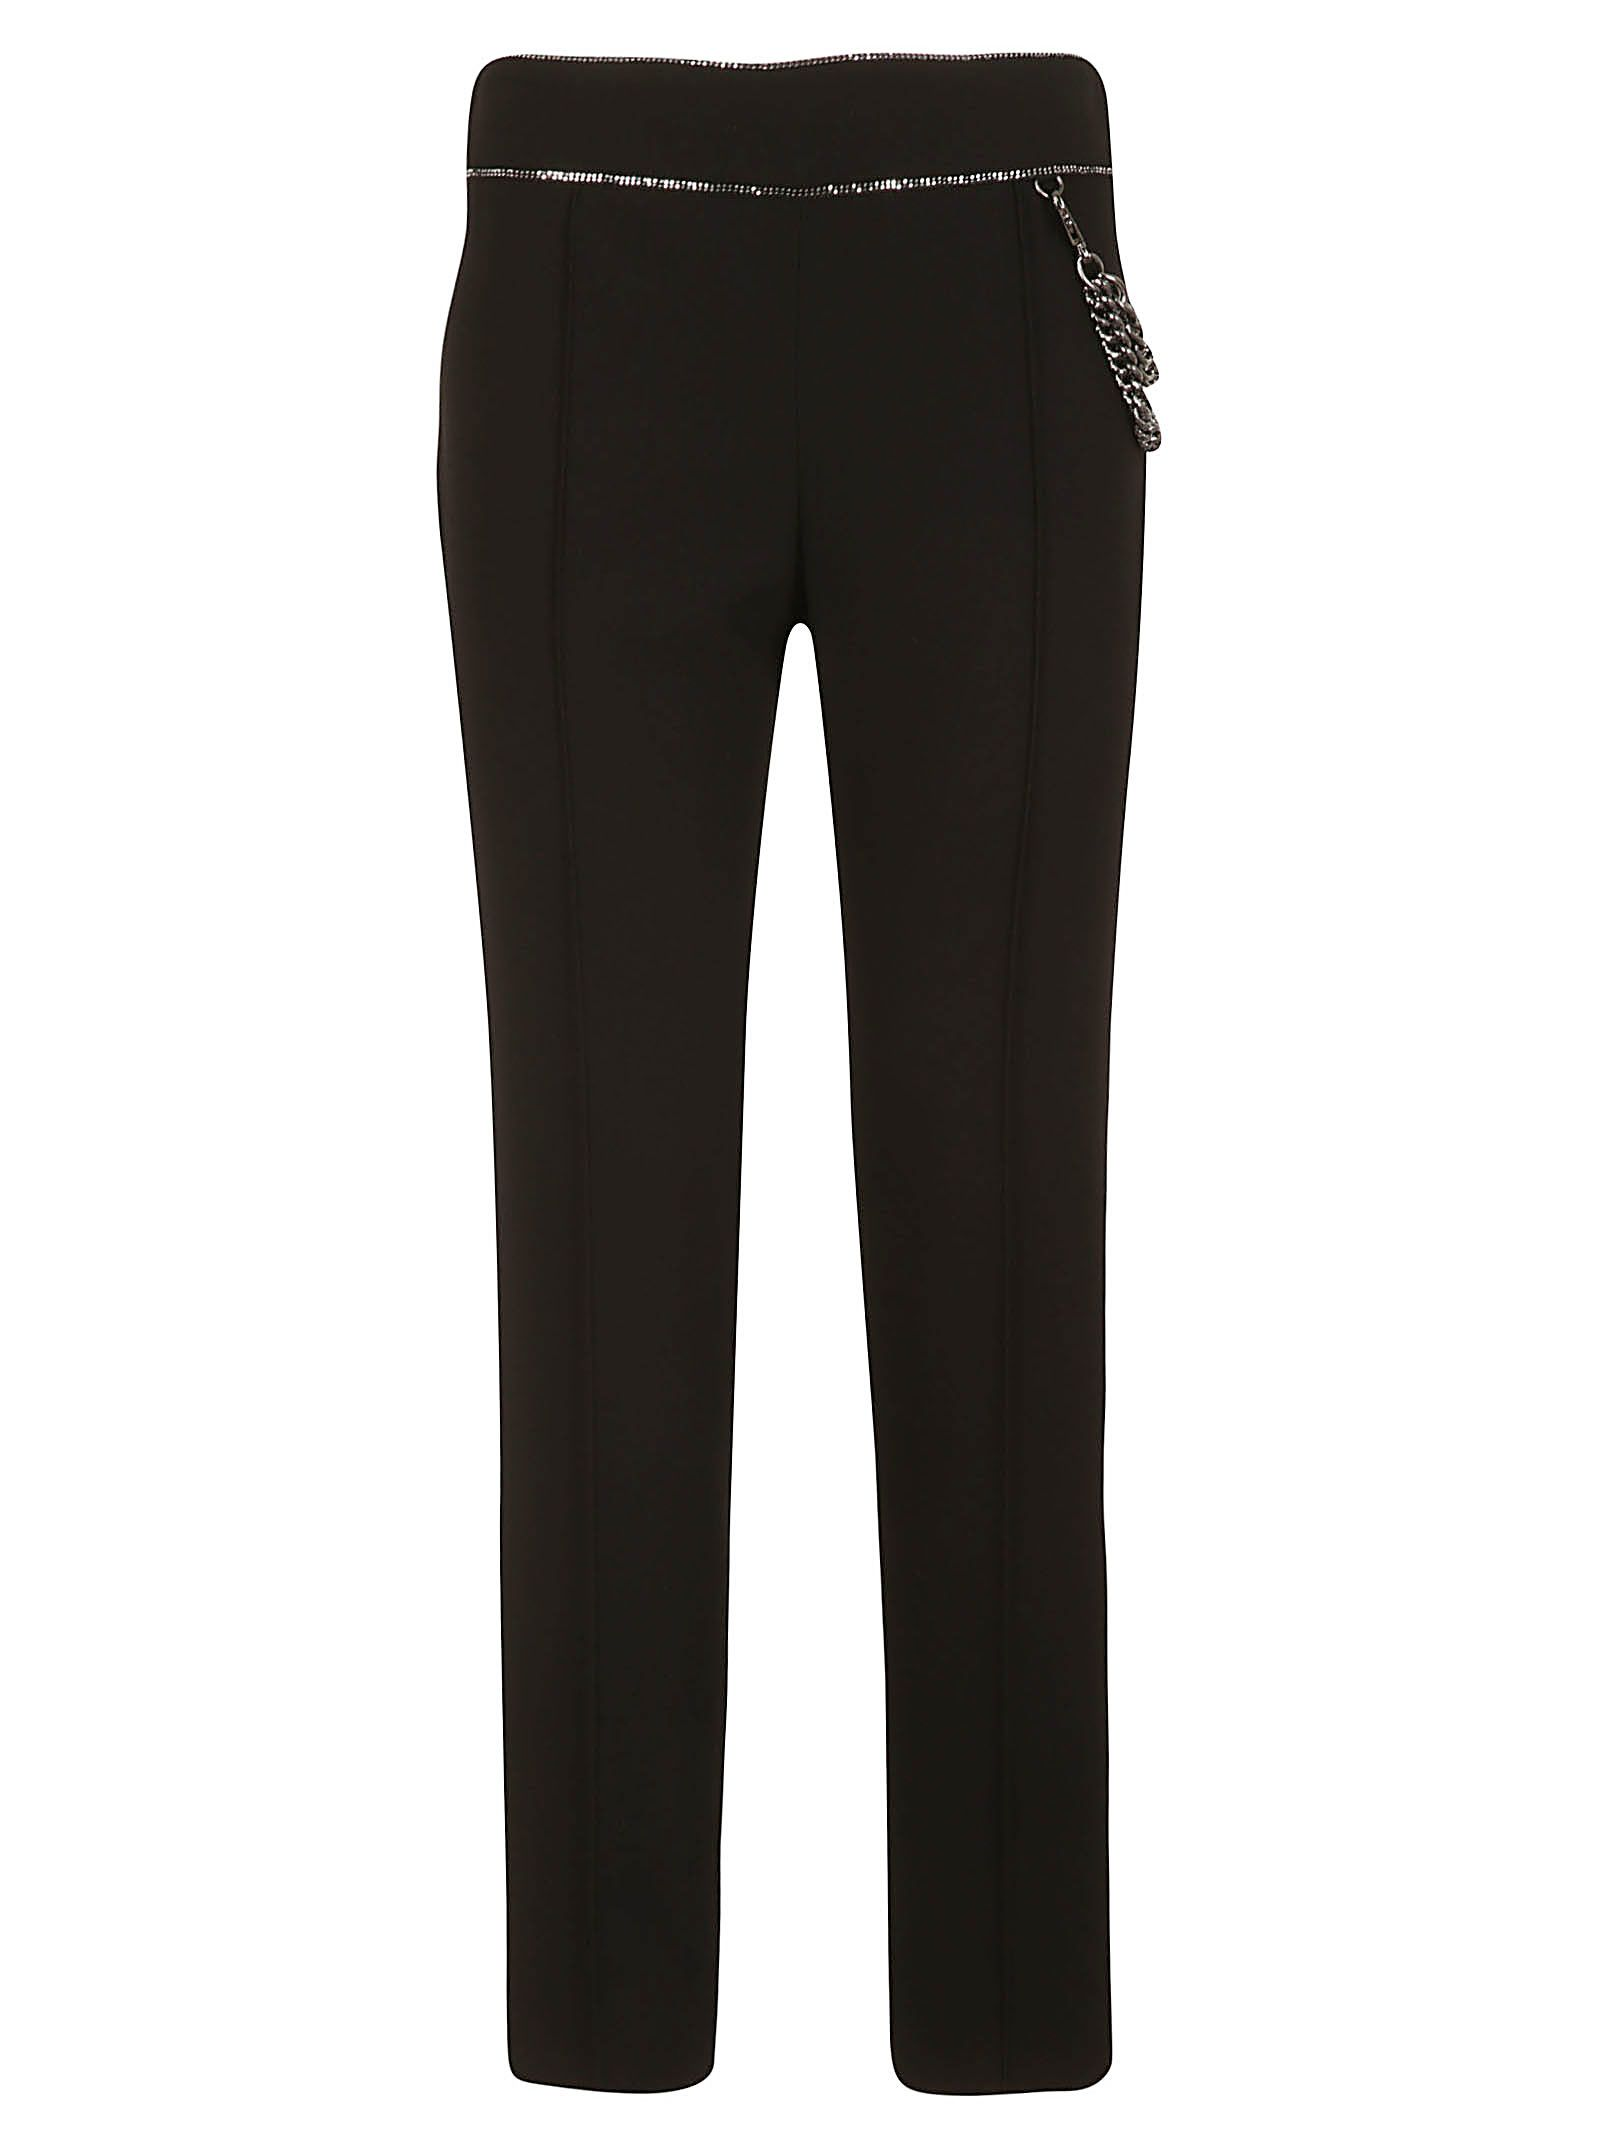 Boutique Moschino Chain Trim Trousers